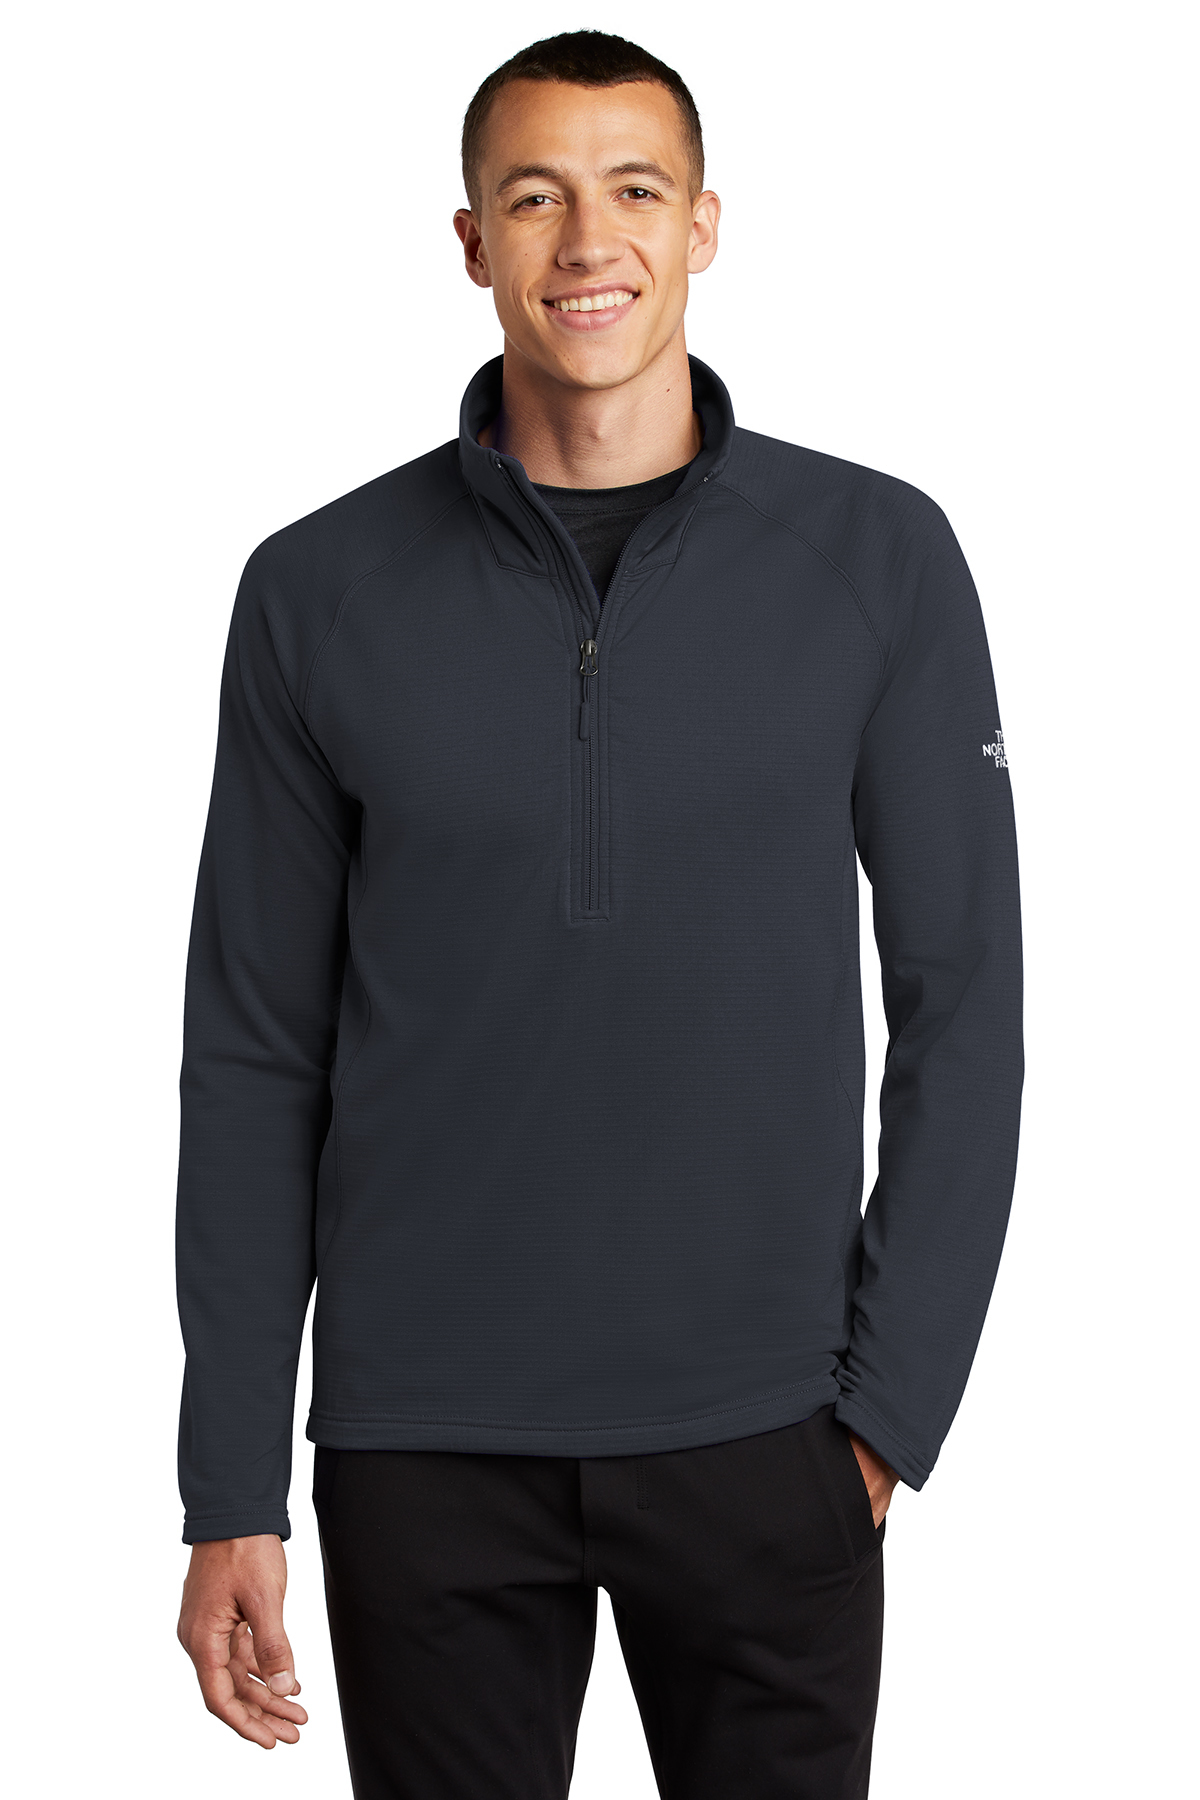 The North Face NF0A47FB - Mountain Peaks 1/4-Zip Fleece